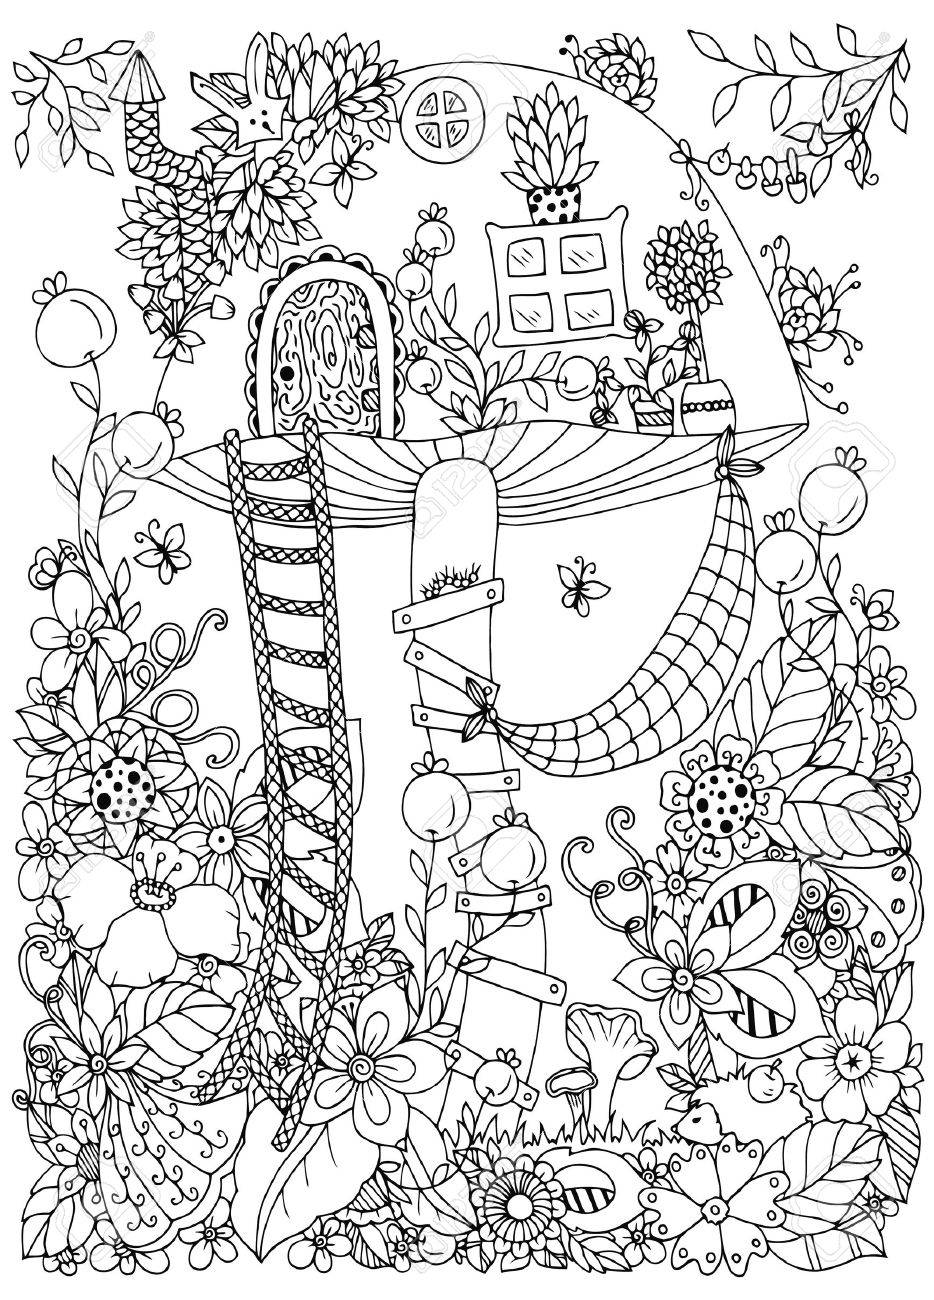 Vector vector illustration zen tangle doodle house of the fungus in the forest doodle flowers coloring book anti stress for adults coloring page